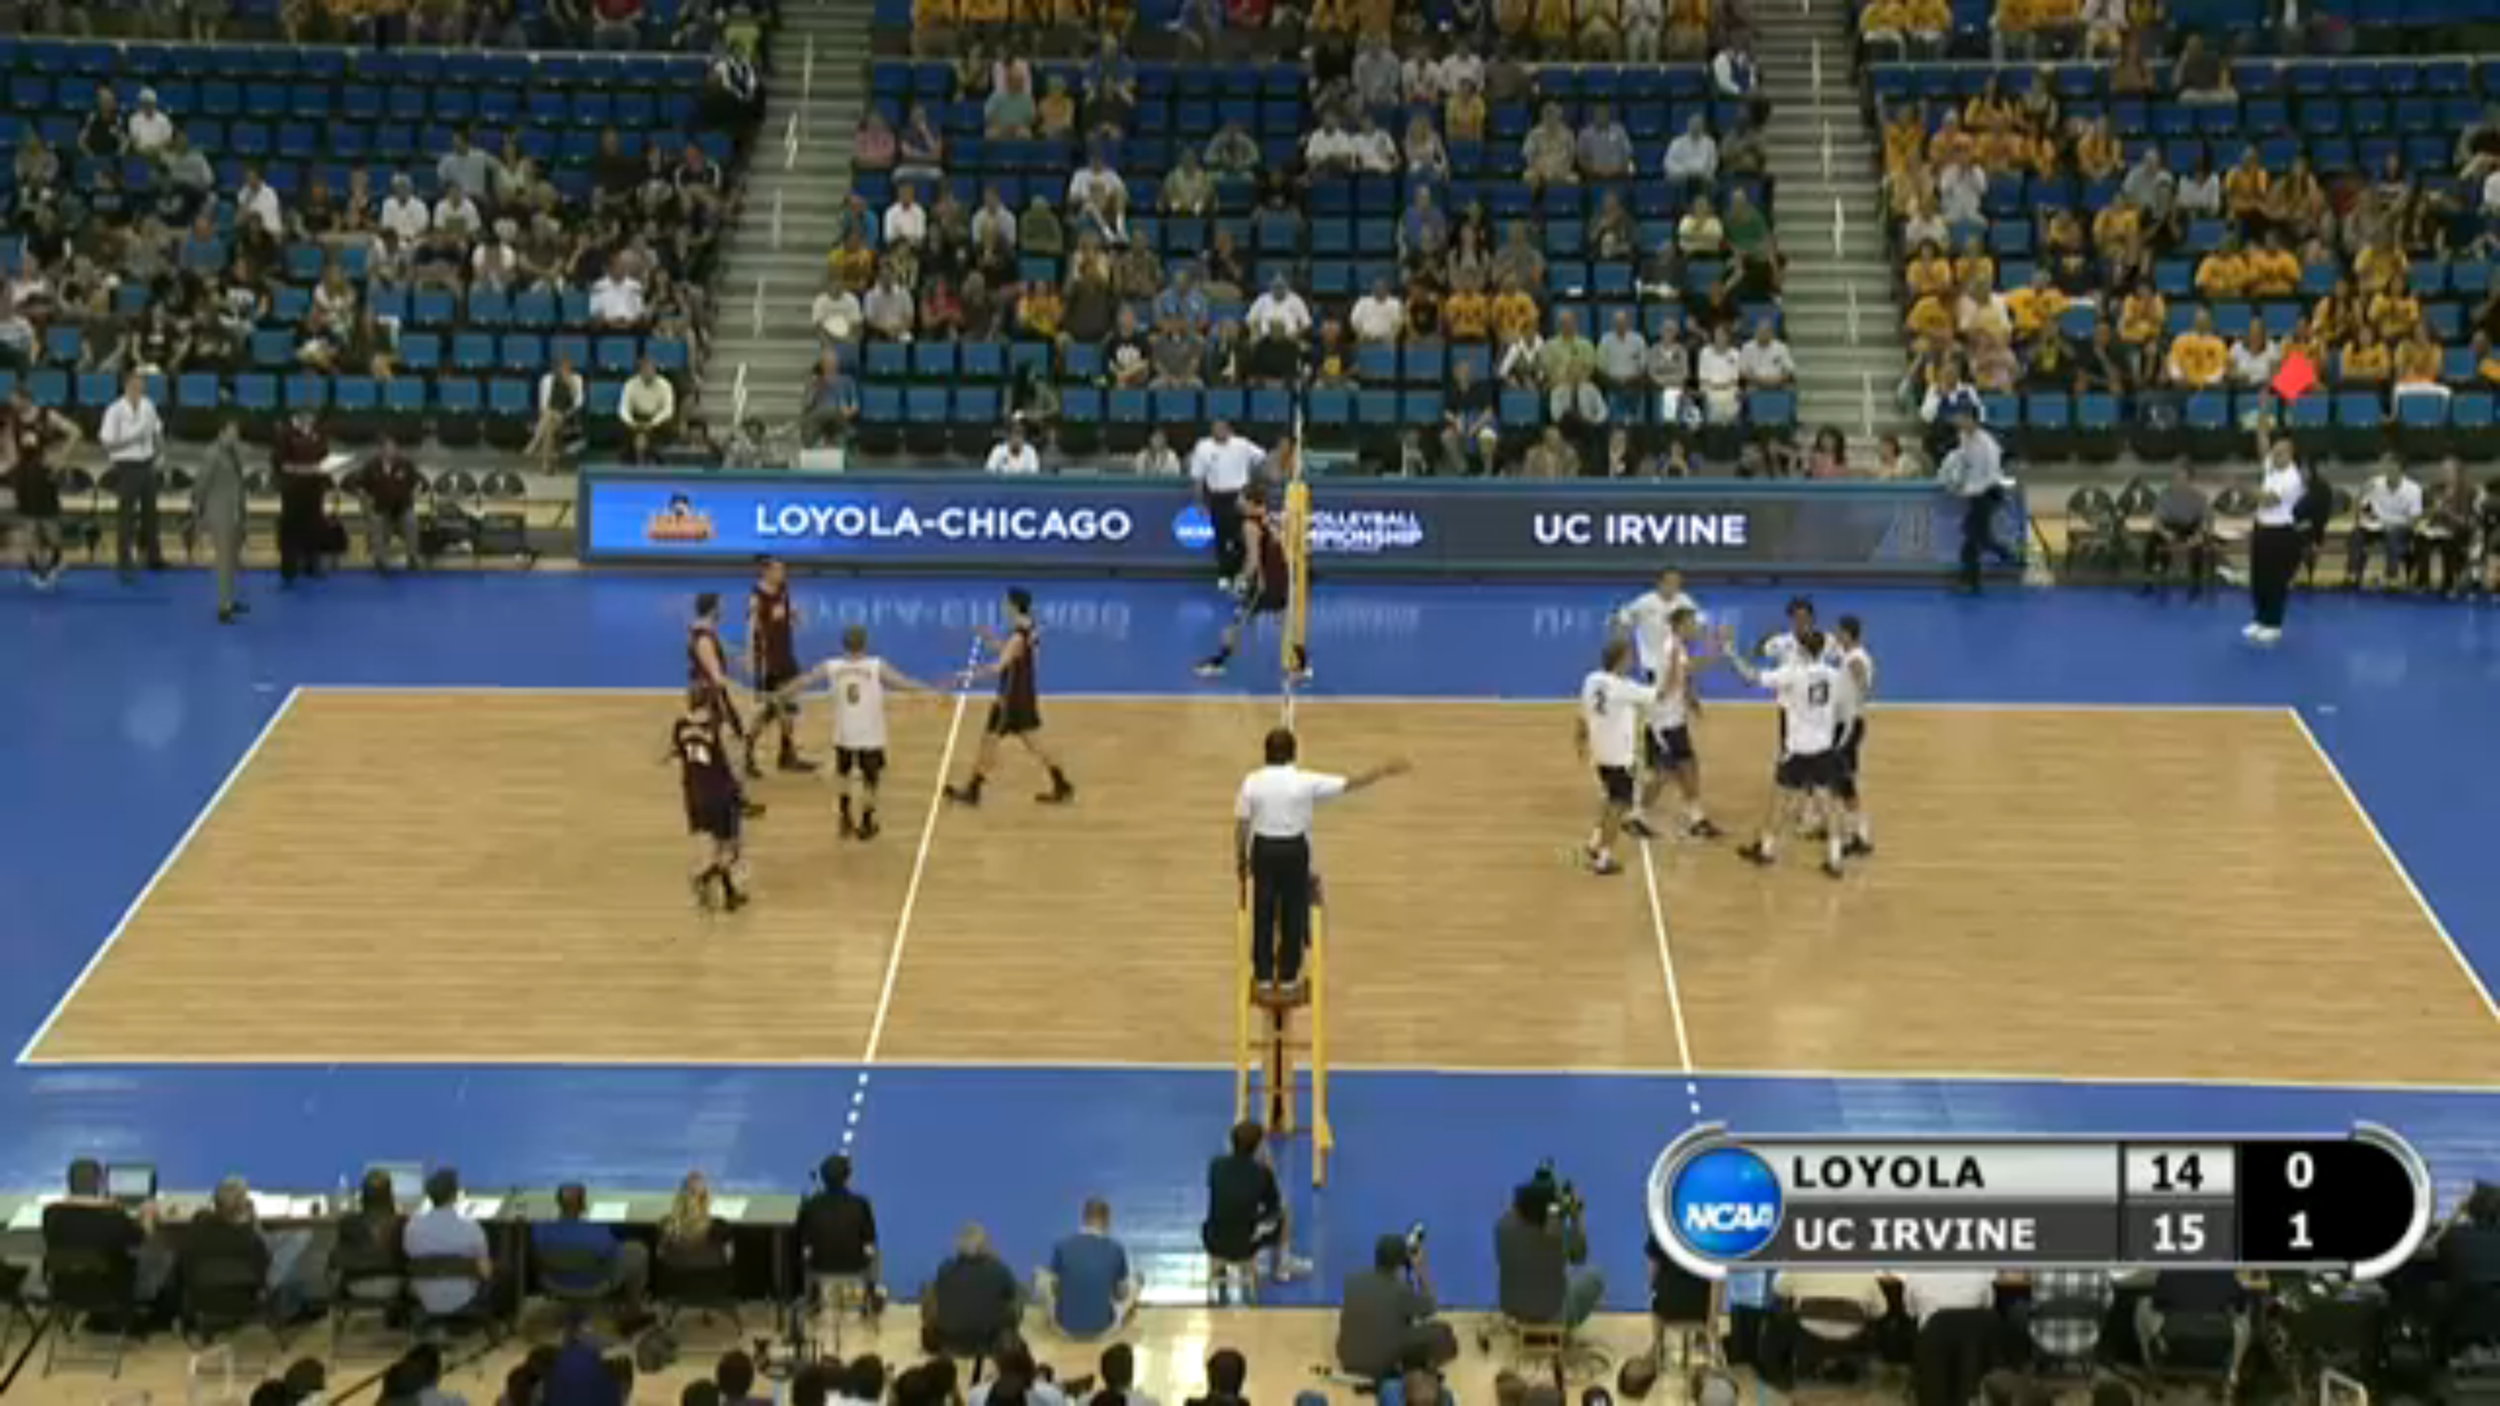 NCAA Men's Volleyball Championships from UCLA